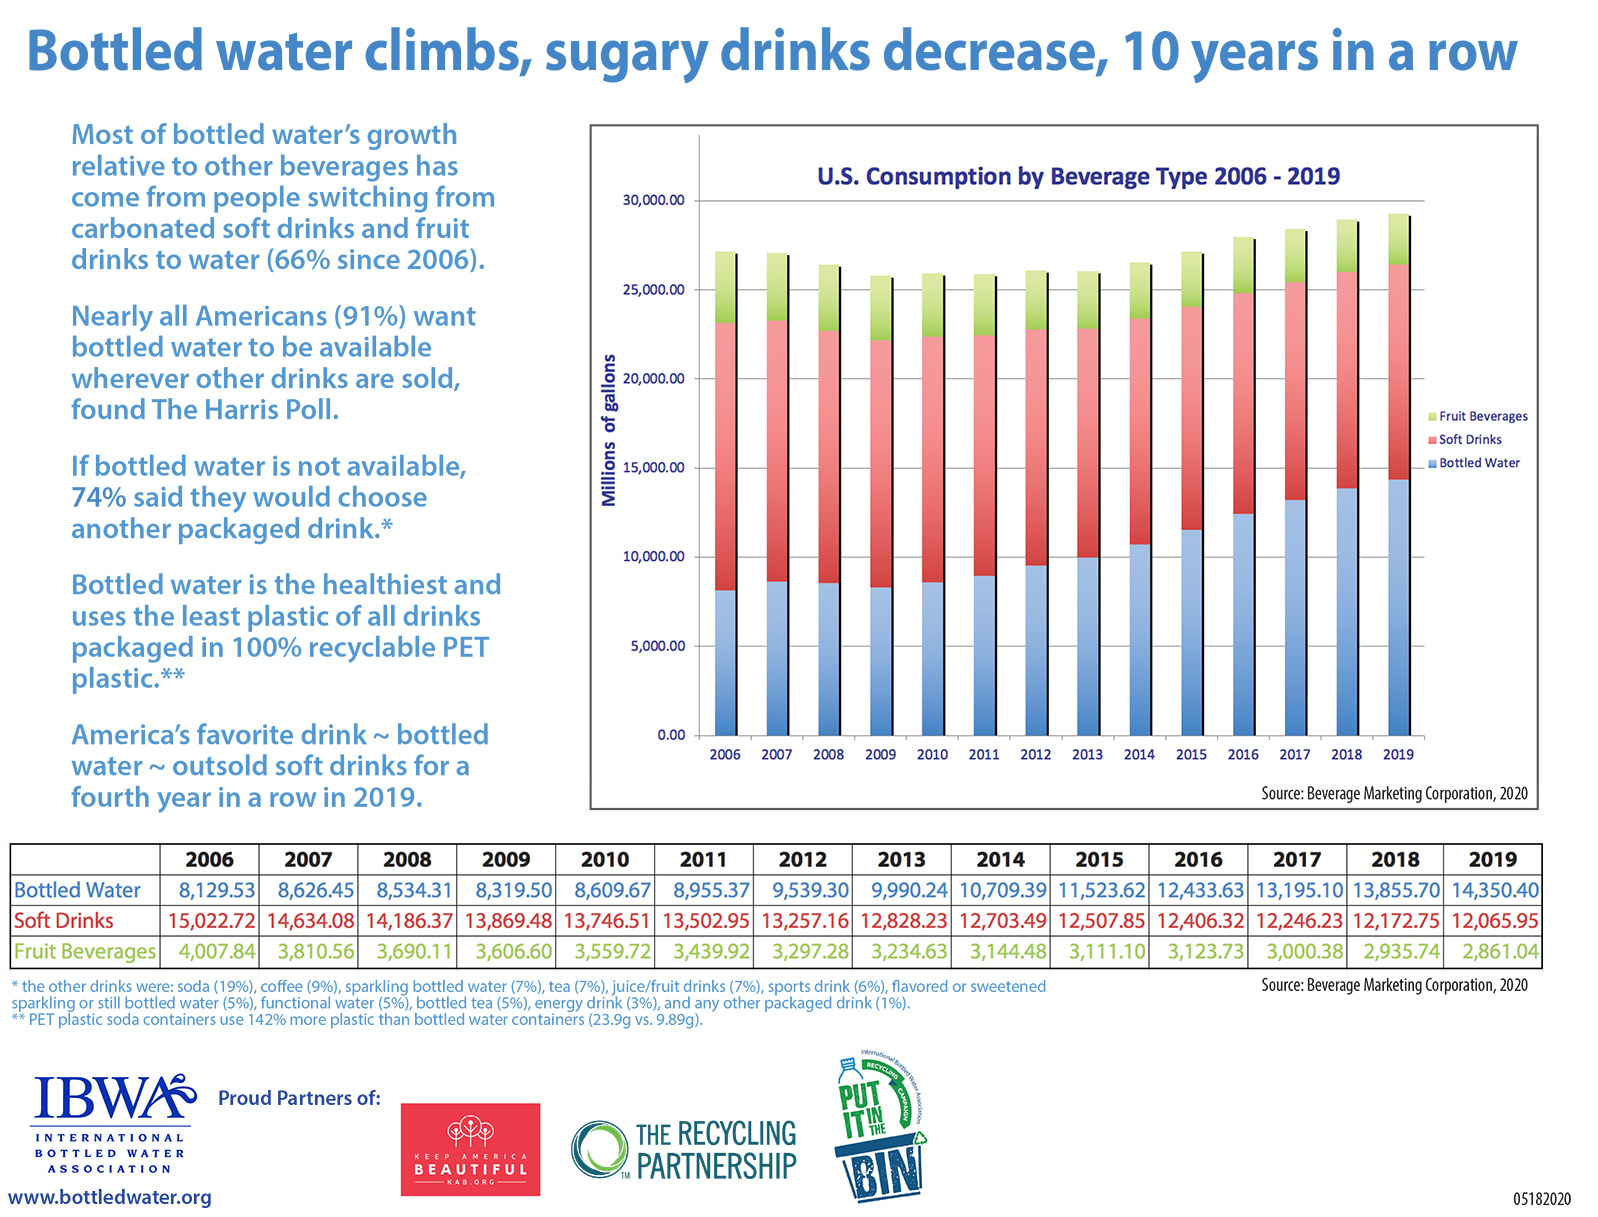 Bottled Water Consumption Grows 10 Years in a Row